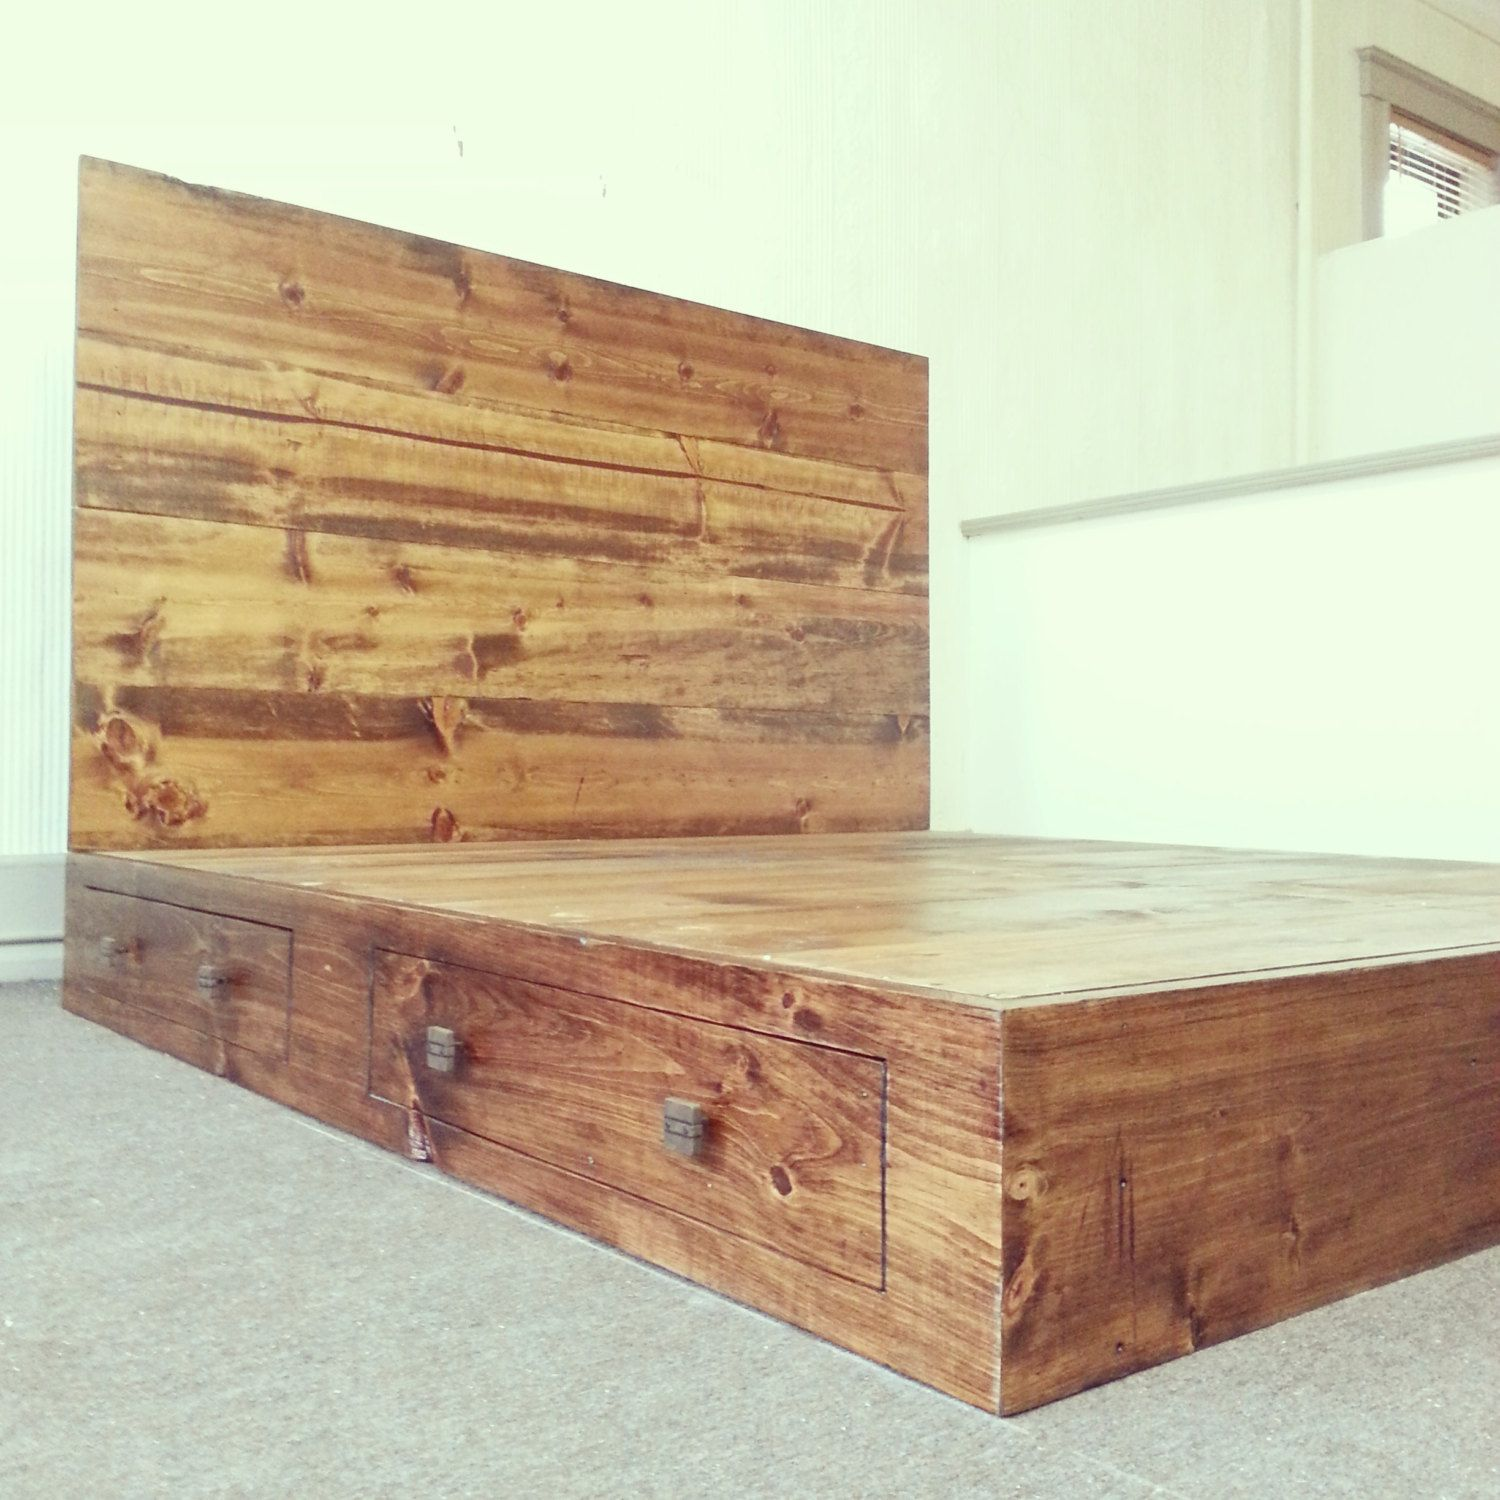 Be bed frames with headboard storage - Rustic California King Size Platform Bed Frame With Storage Drawers